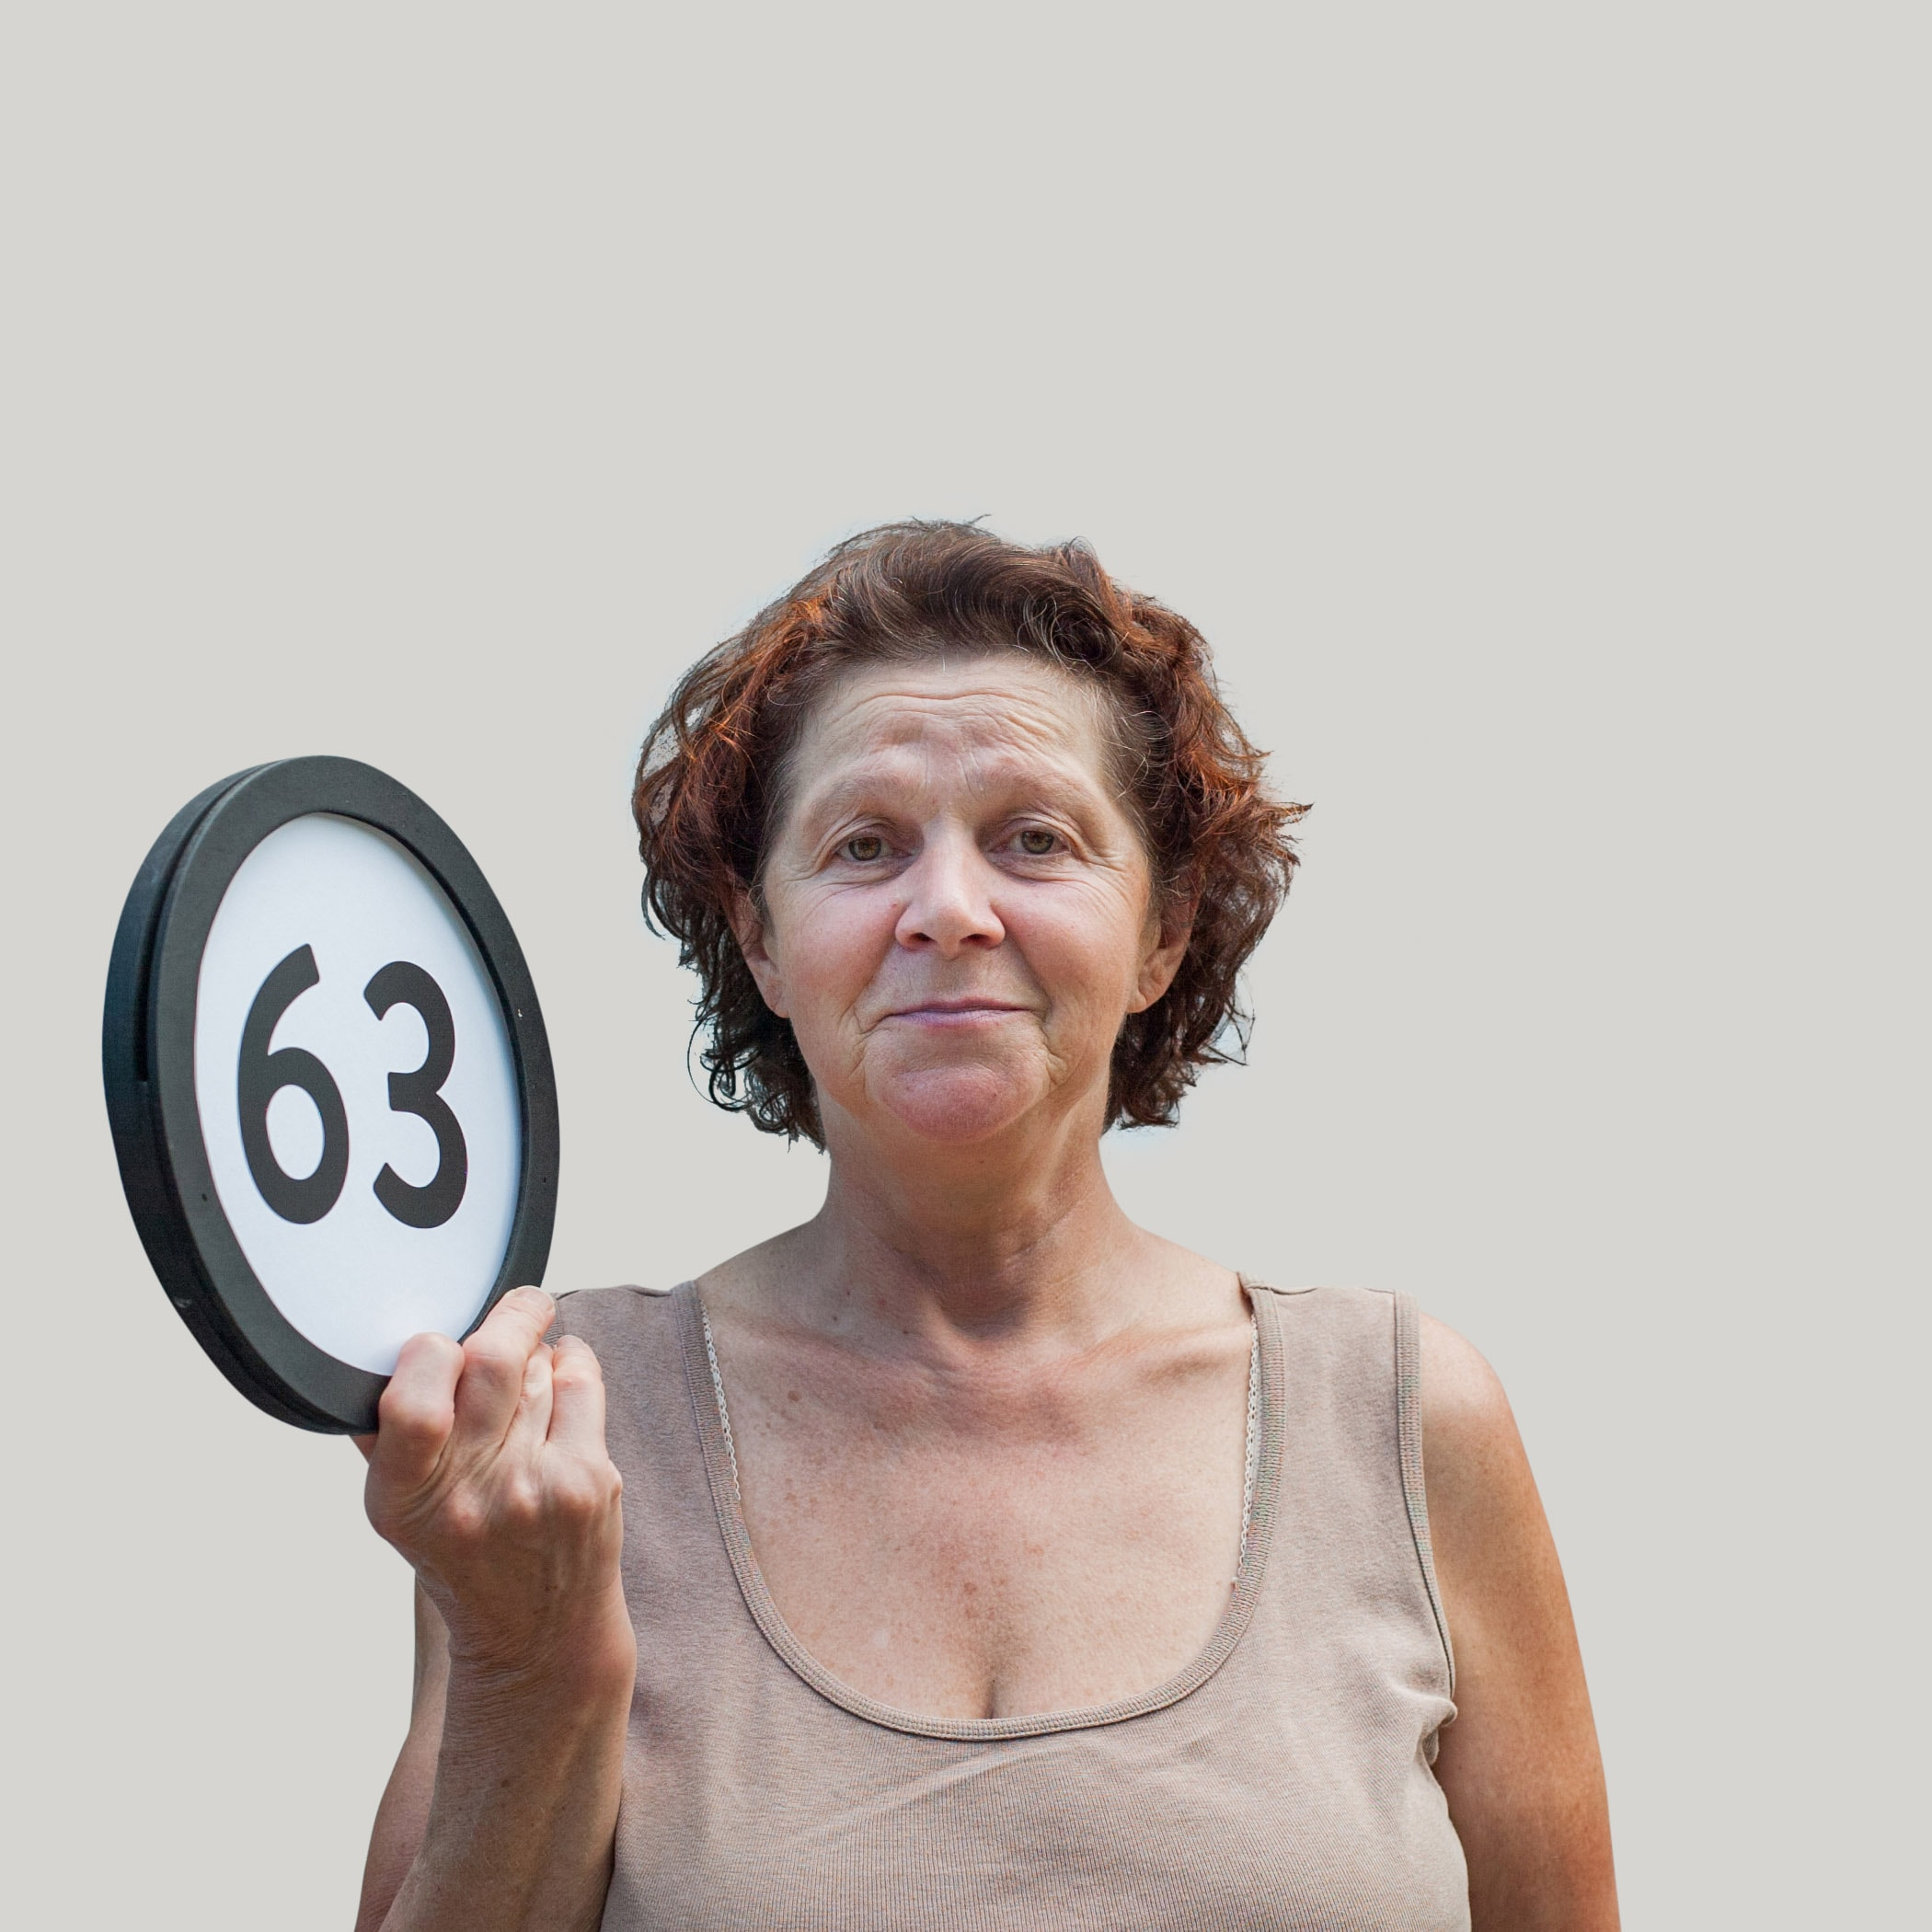 63 year old bemused woman holds with one hand a token with the number sixty-three on it. This digital image is part of the 1 to Infinity portrait photography series by Danny Goldfield..